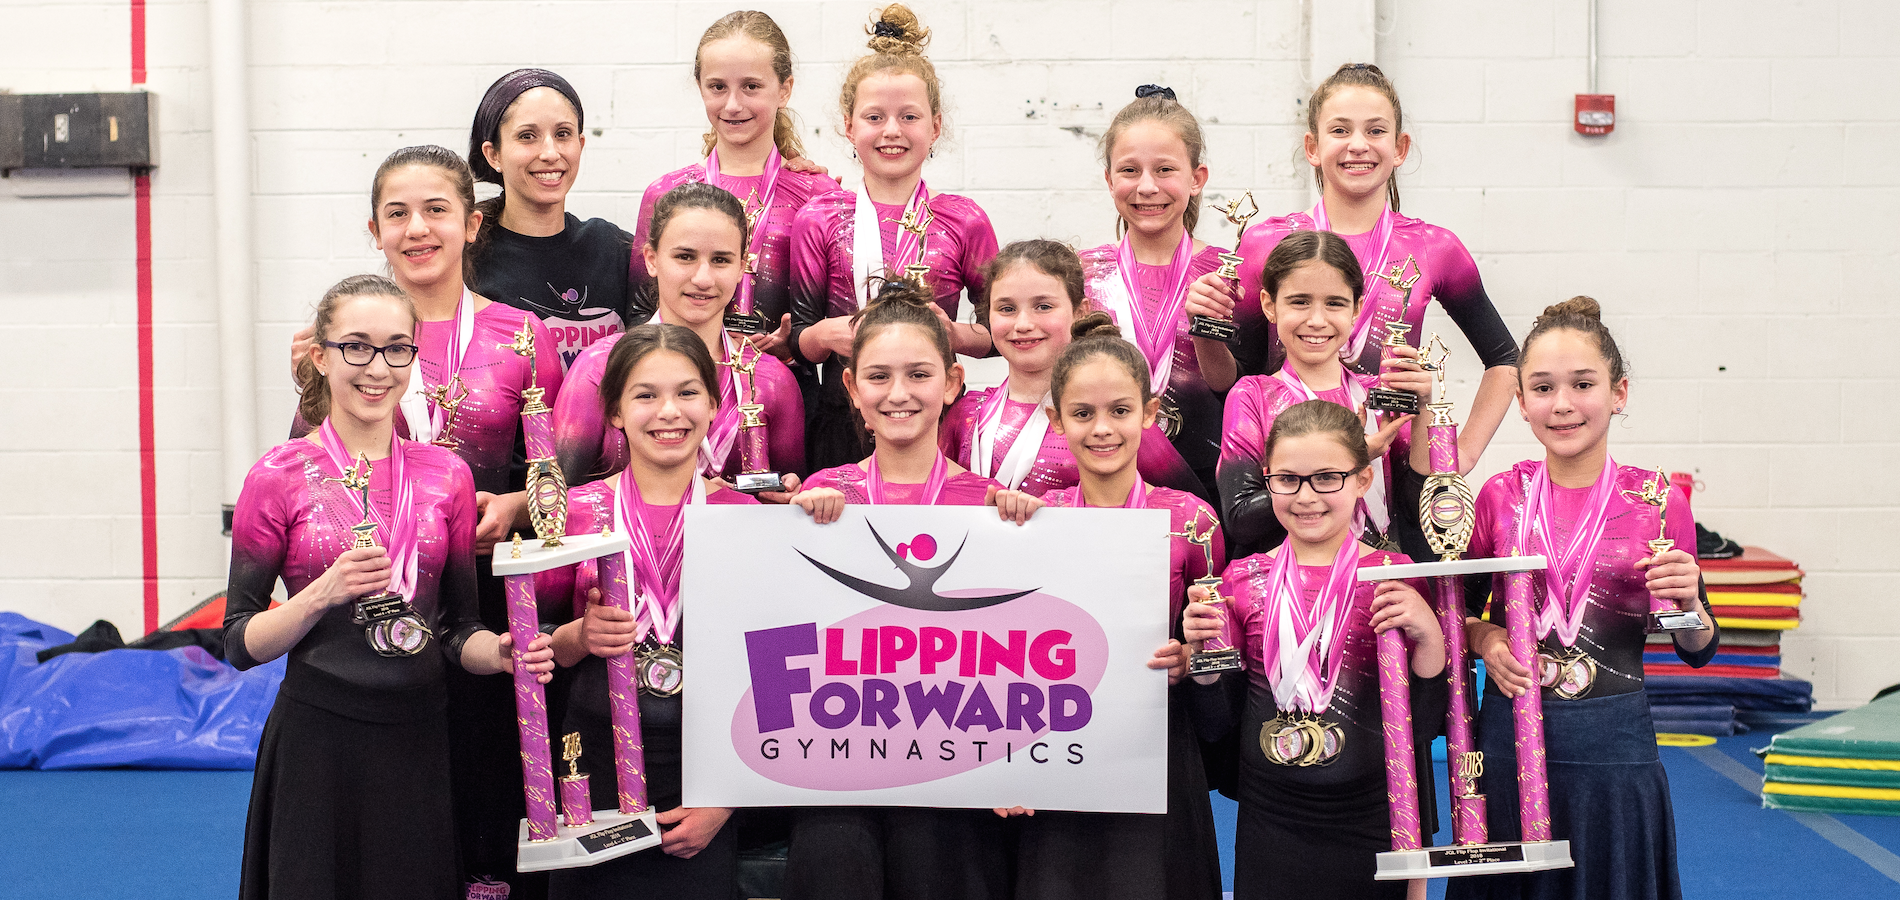 The Orthodox Jewish Girls' Gymnastics Competition